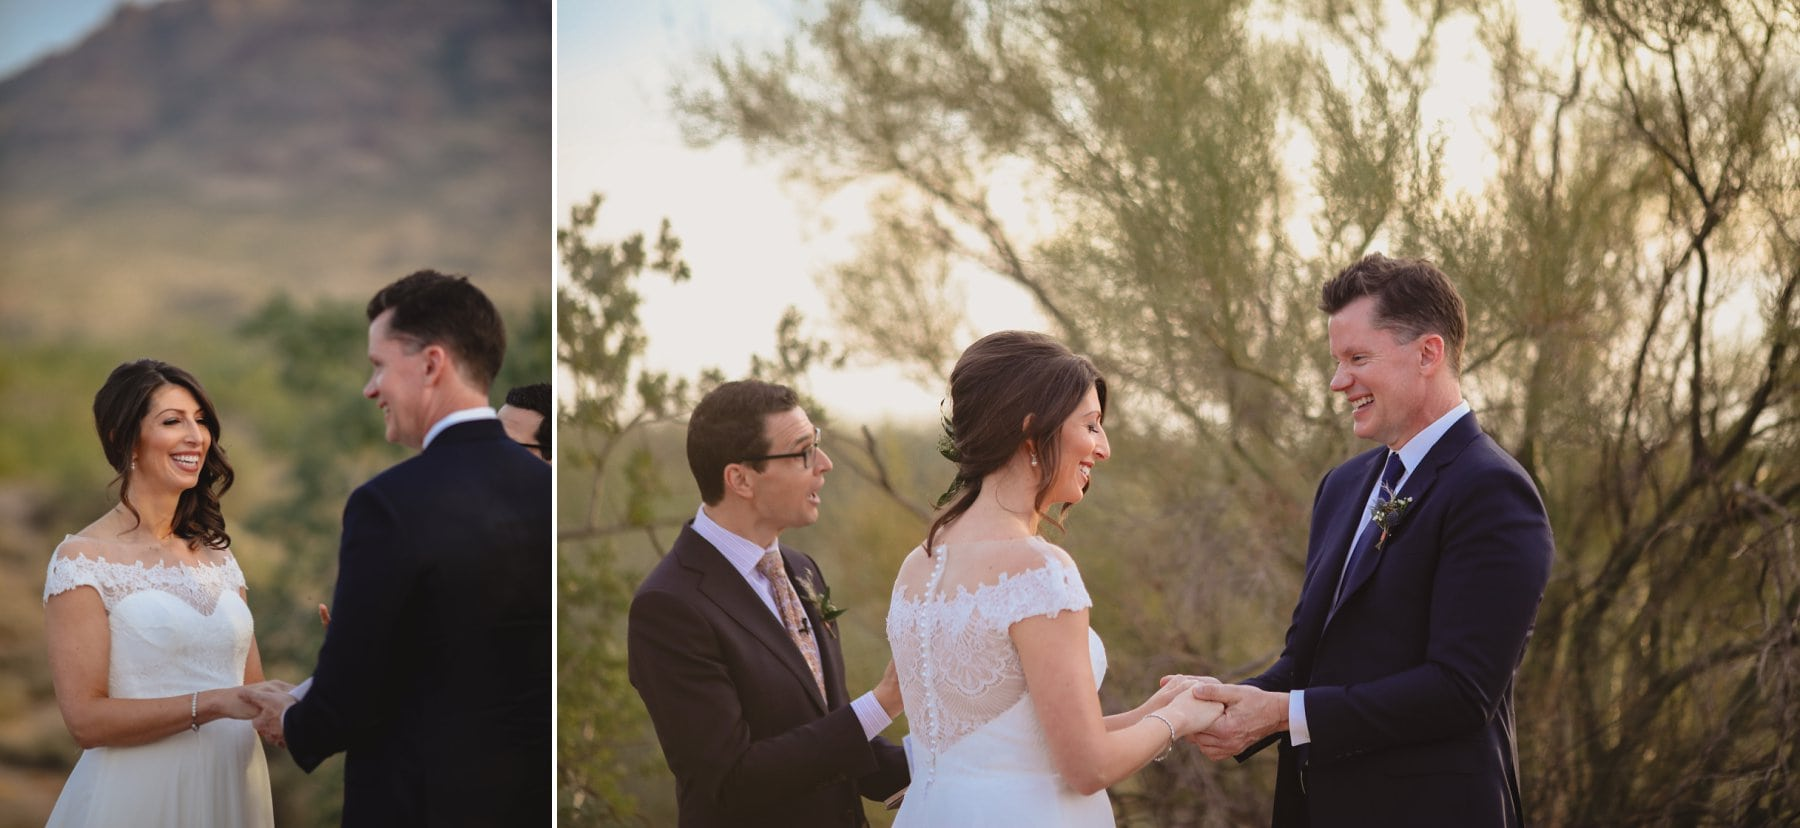 elopement ring exchange Superstition Mountains